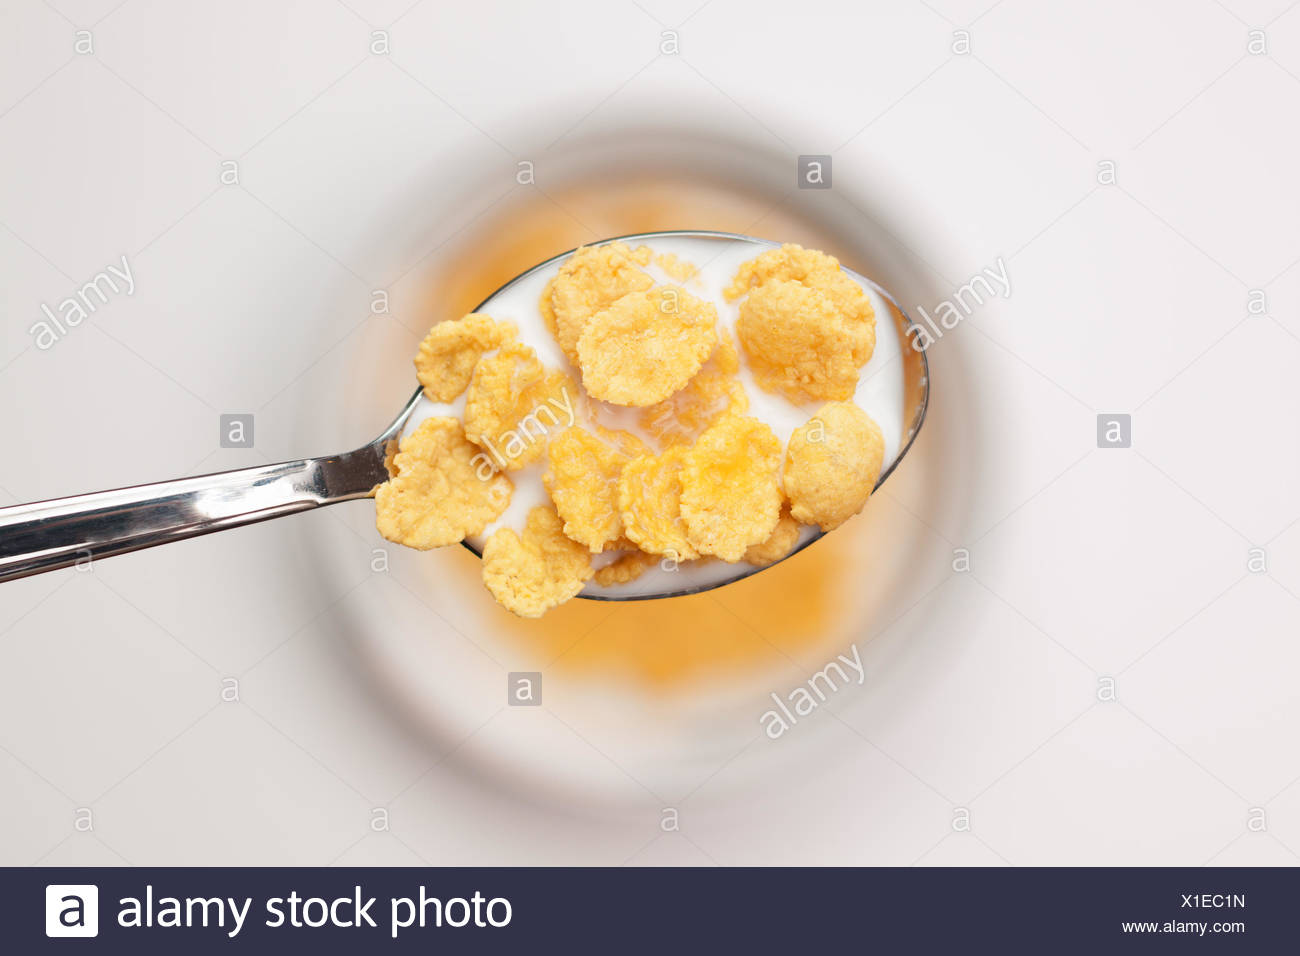 spoon full of cornflakes close-up breakfast concep - Stock Image